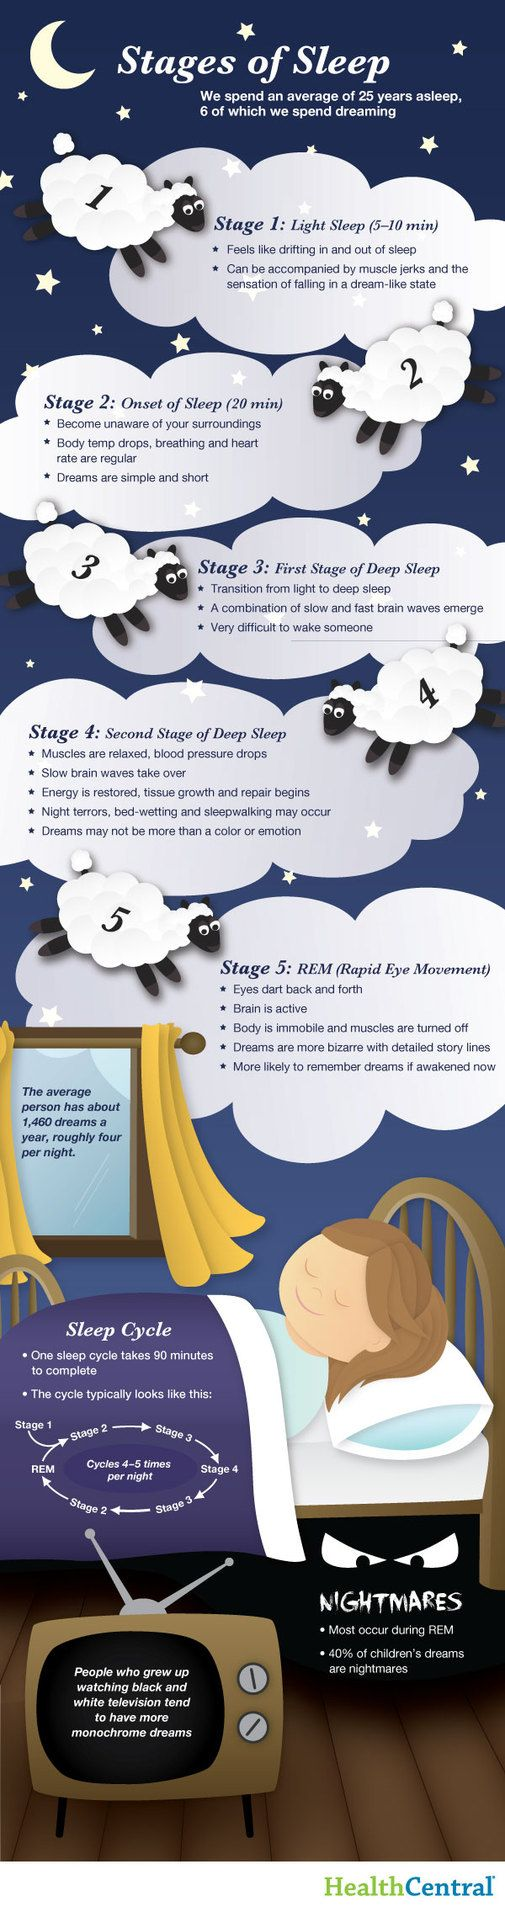 Different stages of sleep and how your sleep is affecting your health.